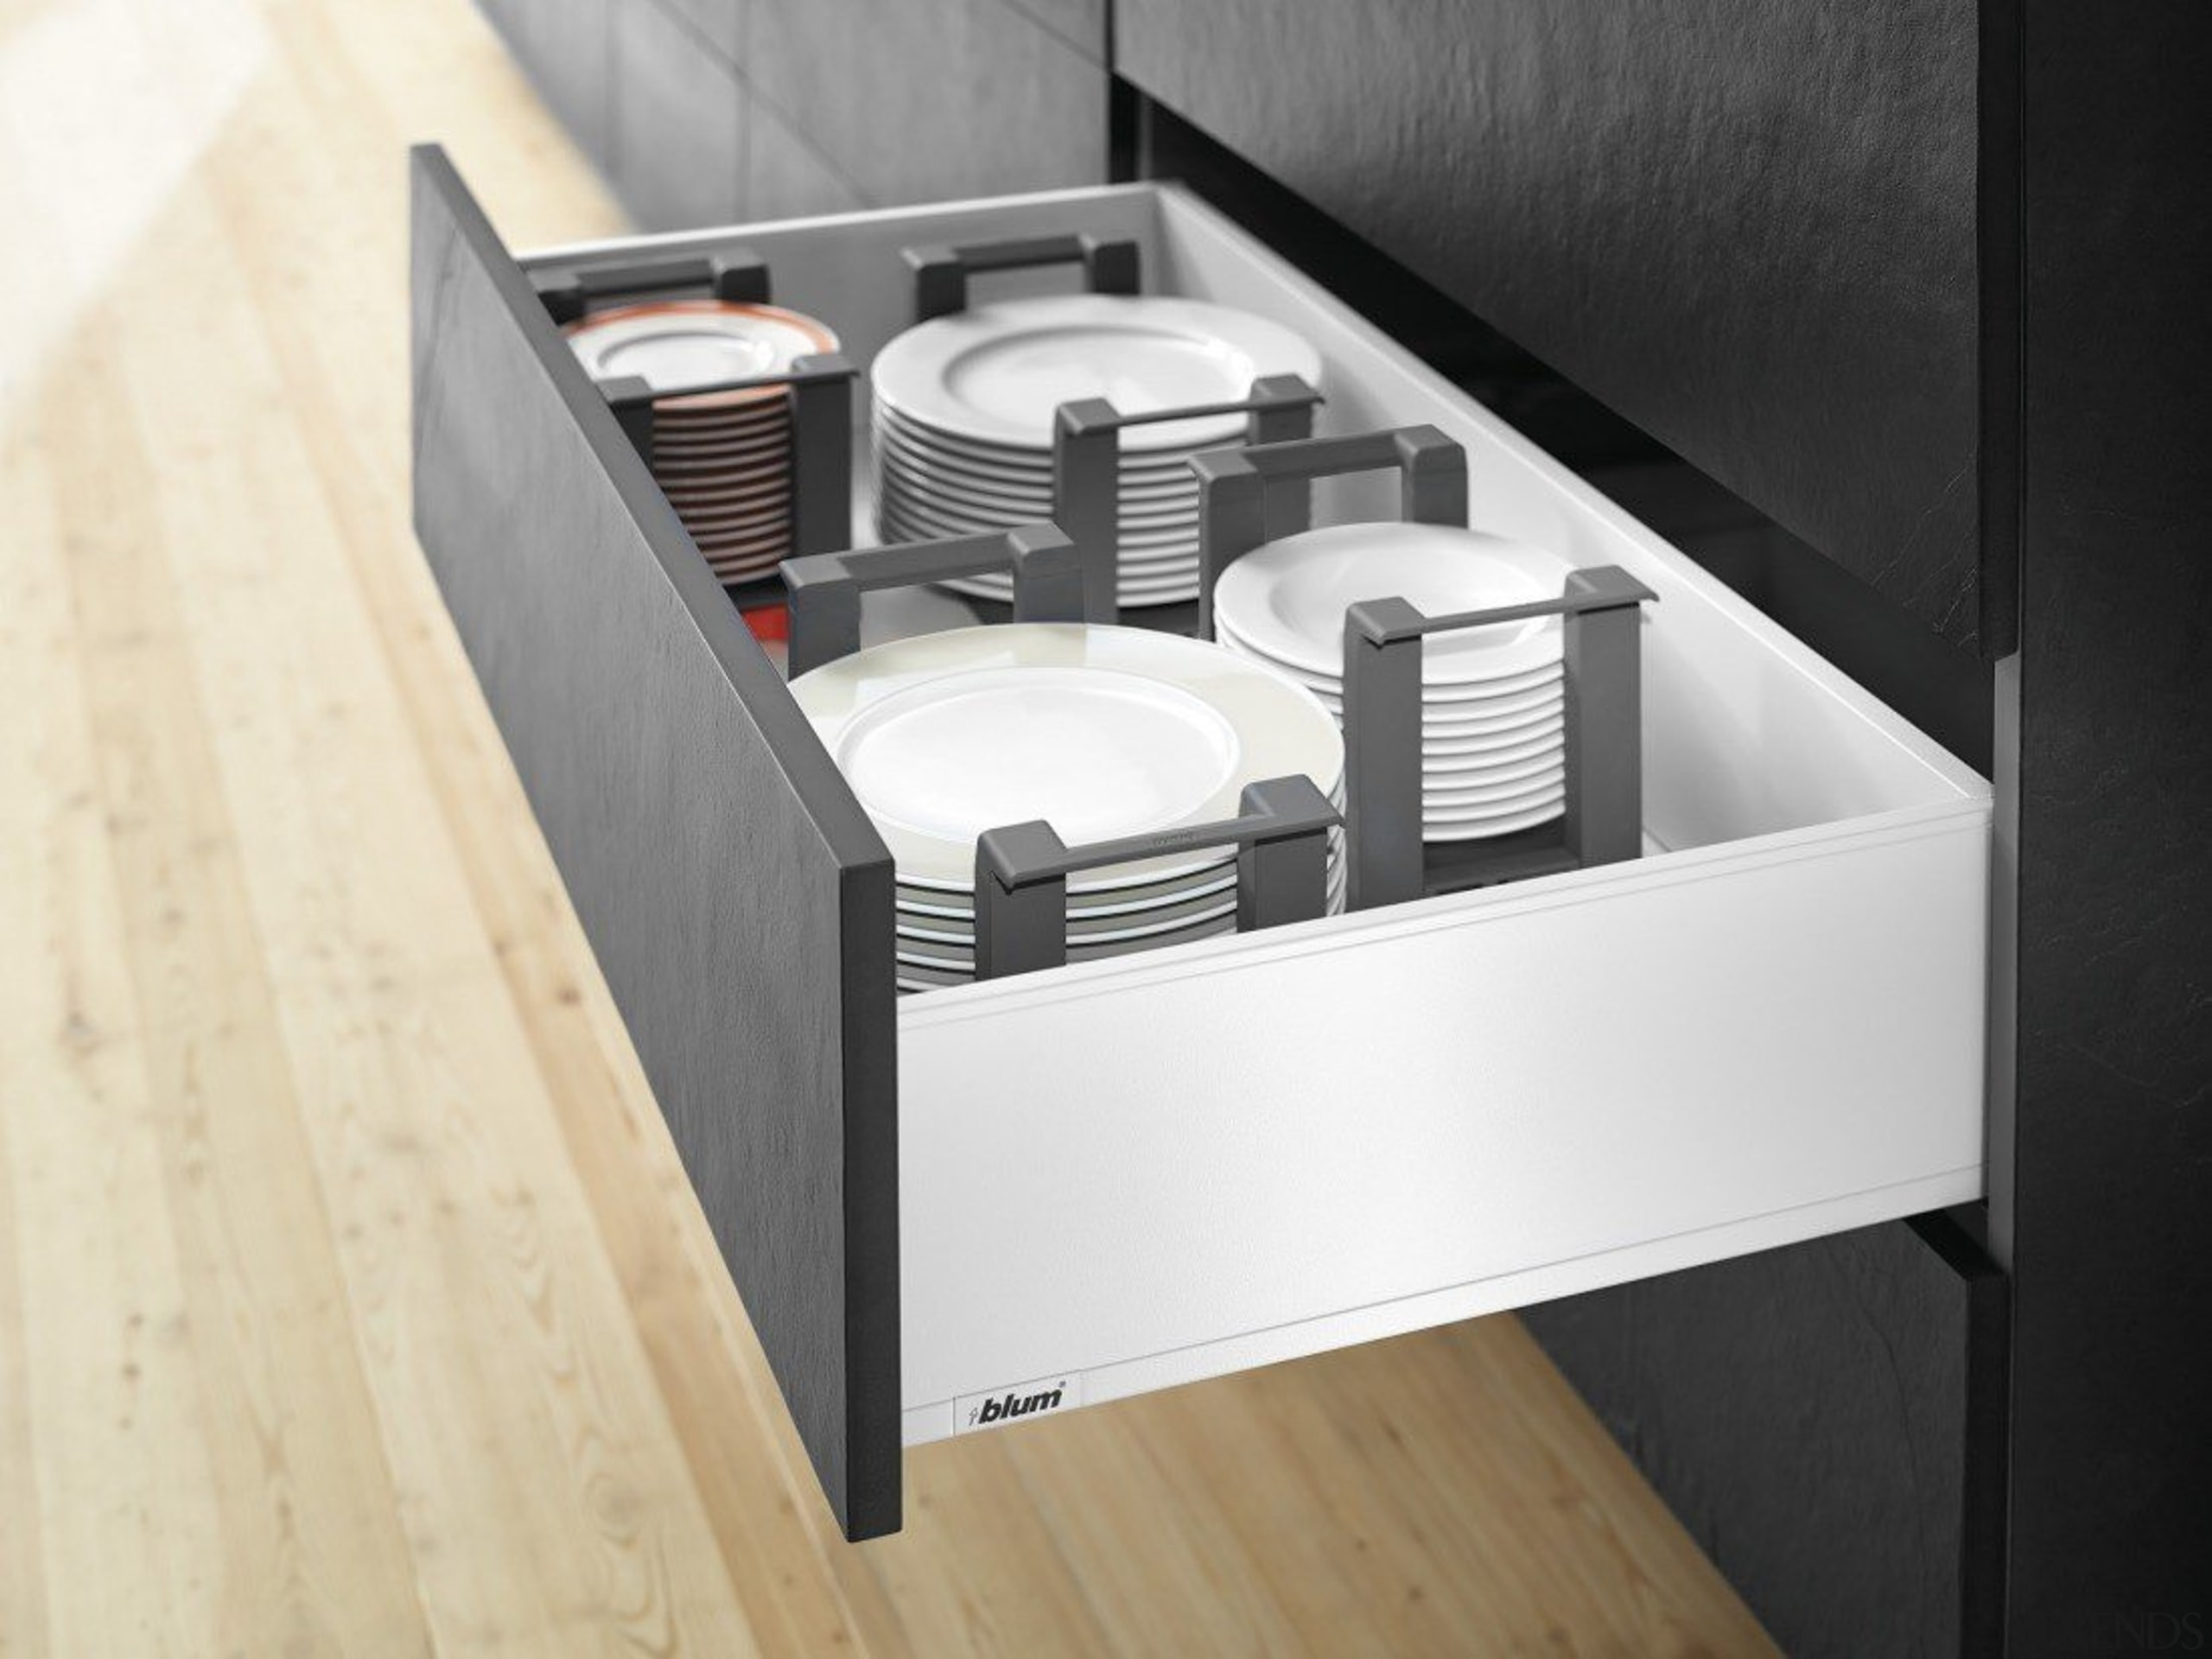 AMBIA-LINE kitchen accessories – organization at its best. drawer, furniture, kitchen, product, product design, white, black